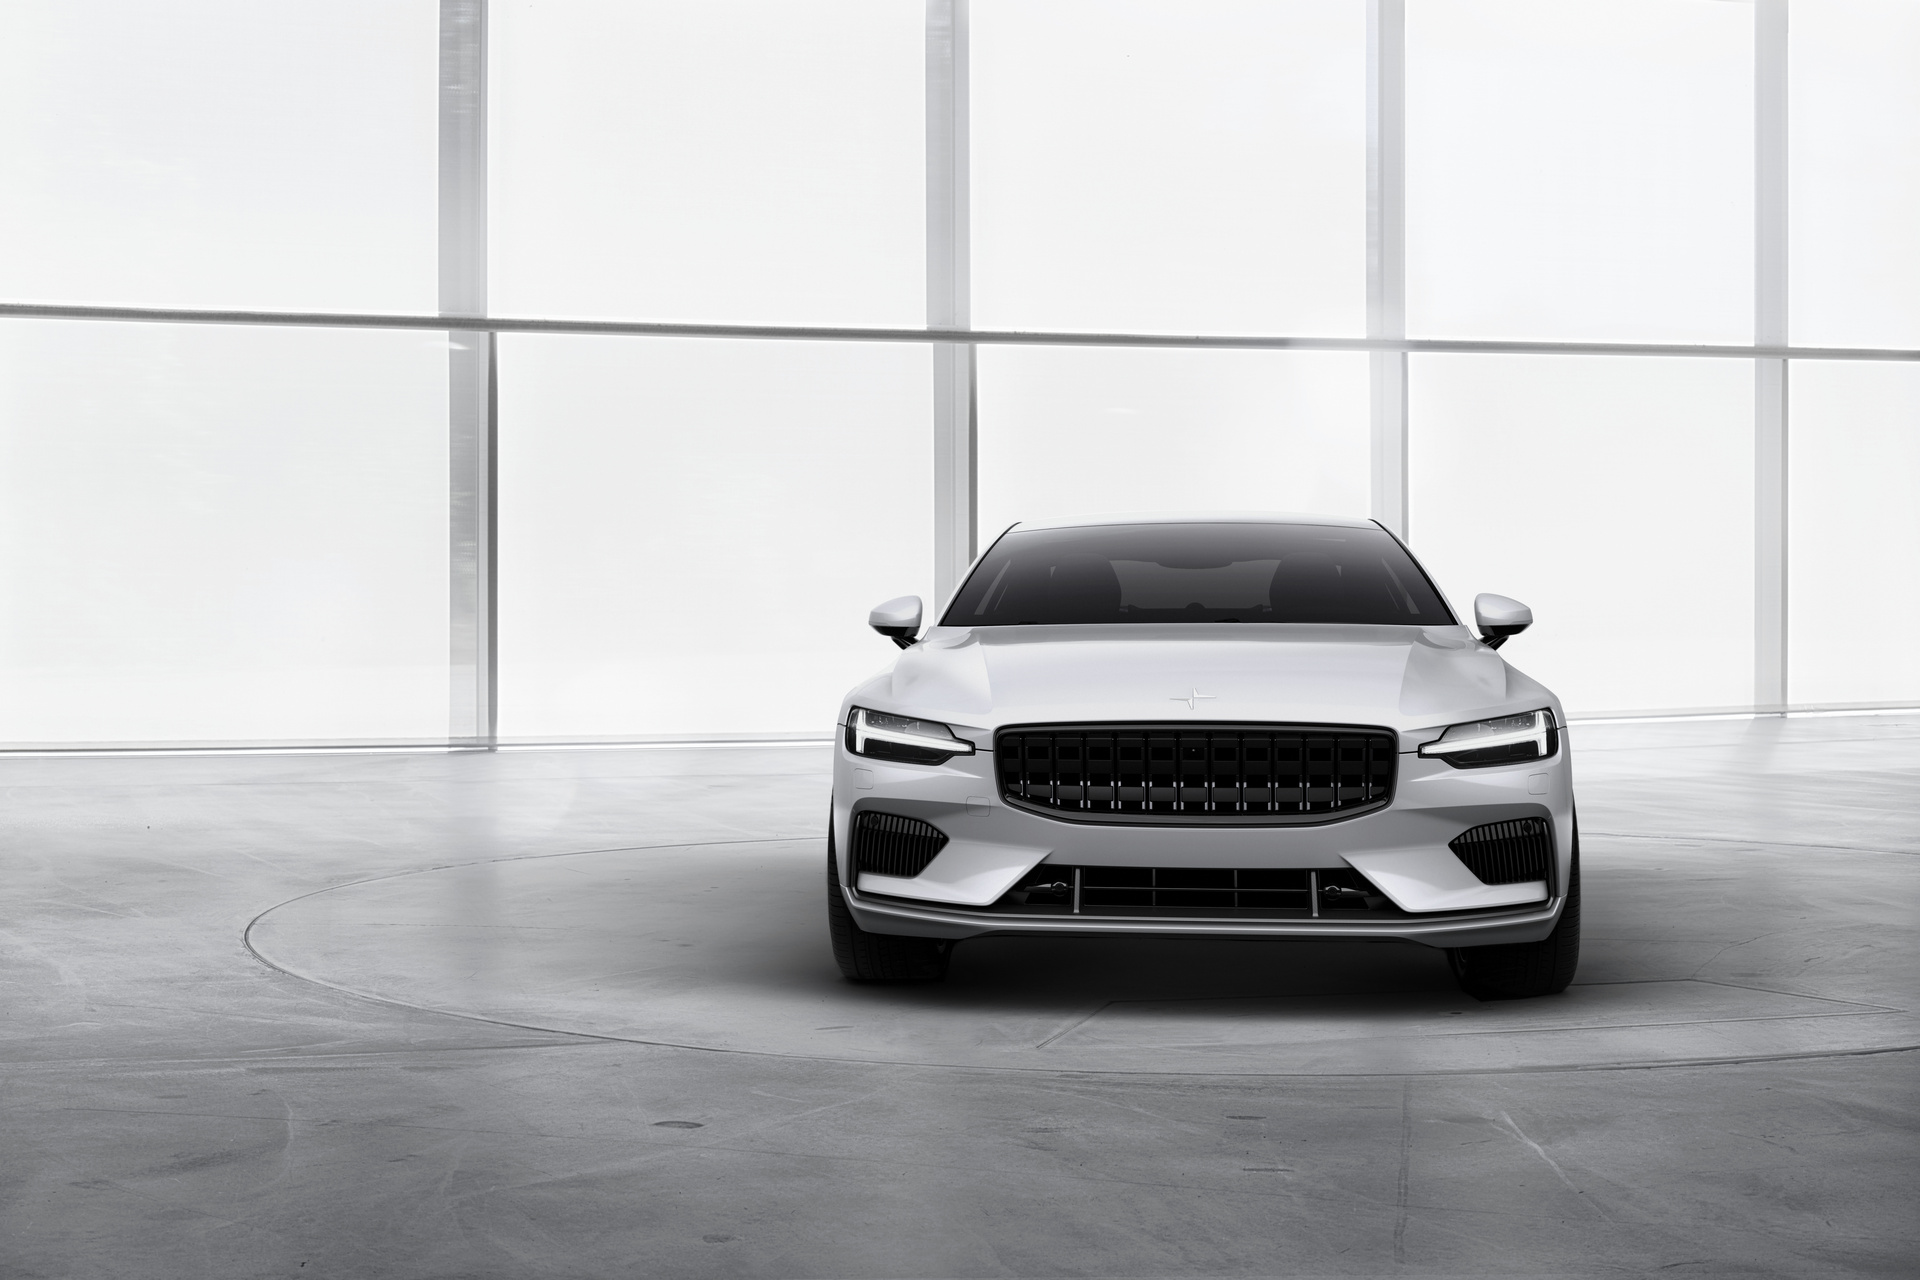 polestar 1 surprises nobody as it proves to be a hit on public debut